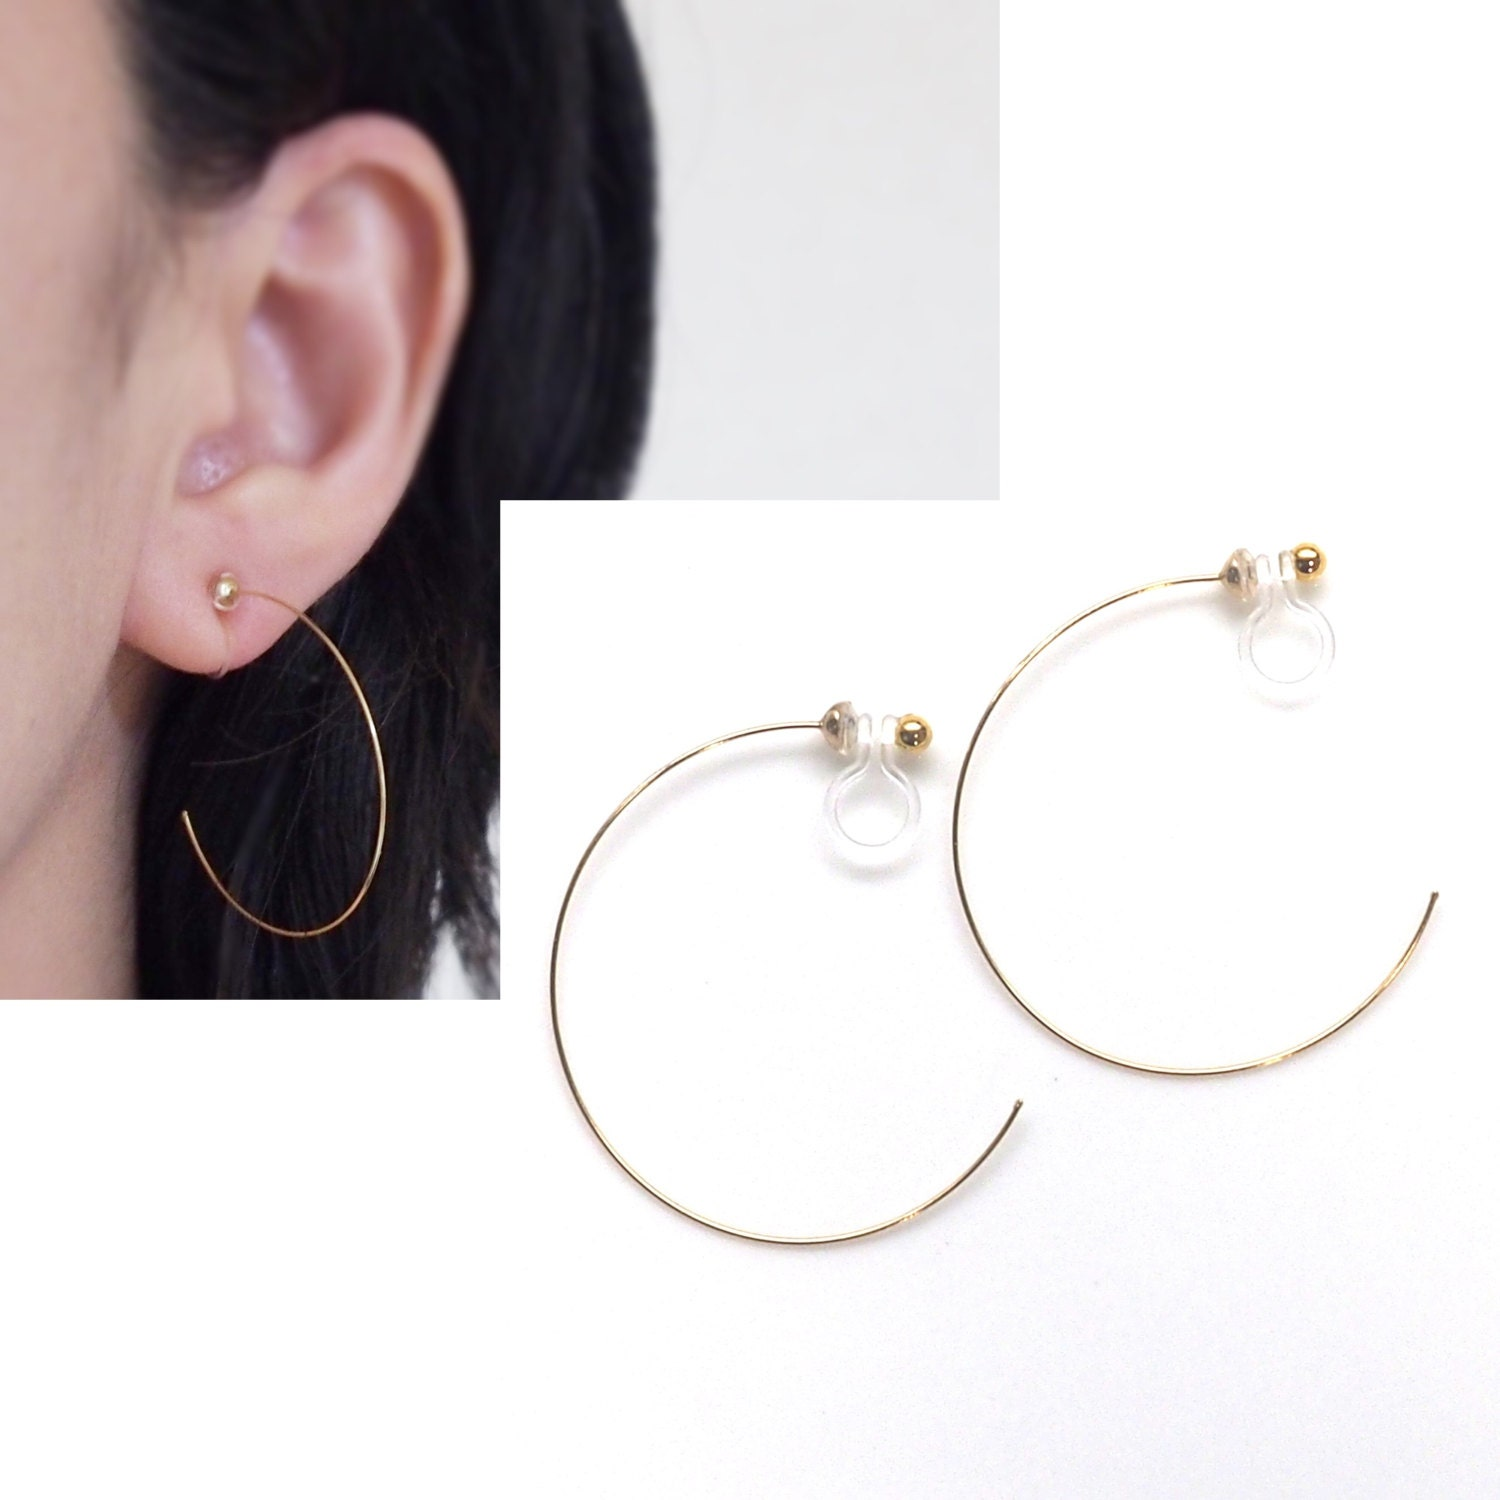 Gold Invisible Clip On Hoop Earrings Non Pierced Earrings Clip